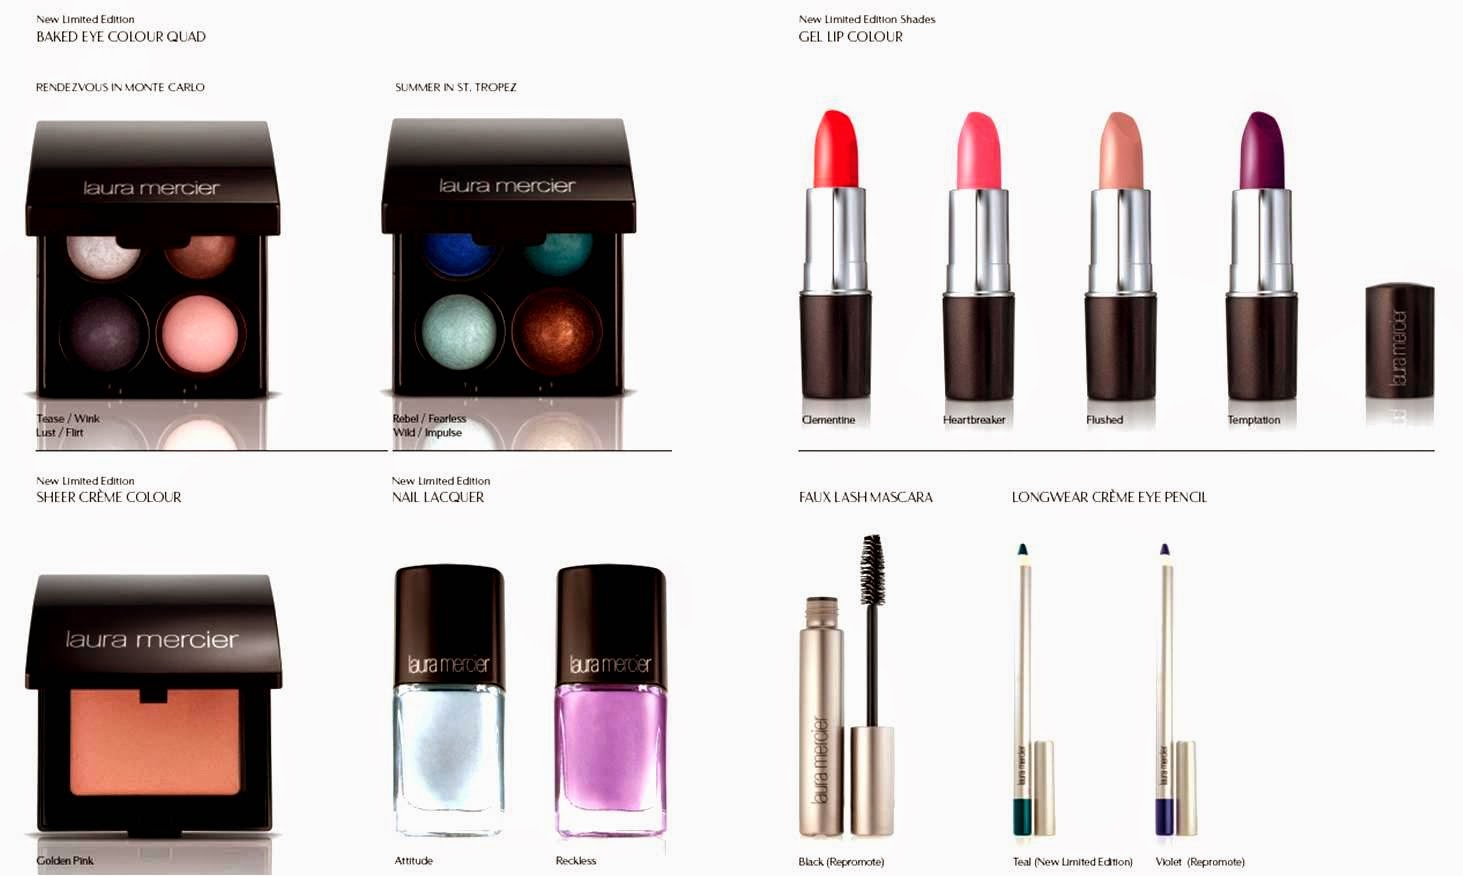 Laura Mercier Summer 2014 New Attitude Colour Story, Laura Mercier, Summer 2014 makeup trend, New Attitude, Colour Story, makeup, makeup collection